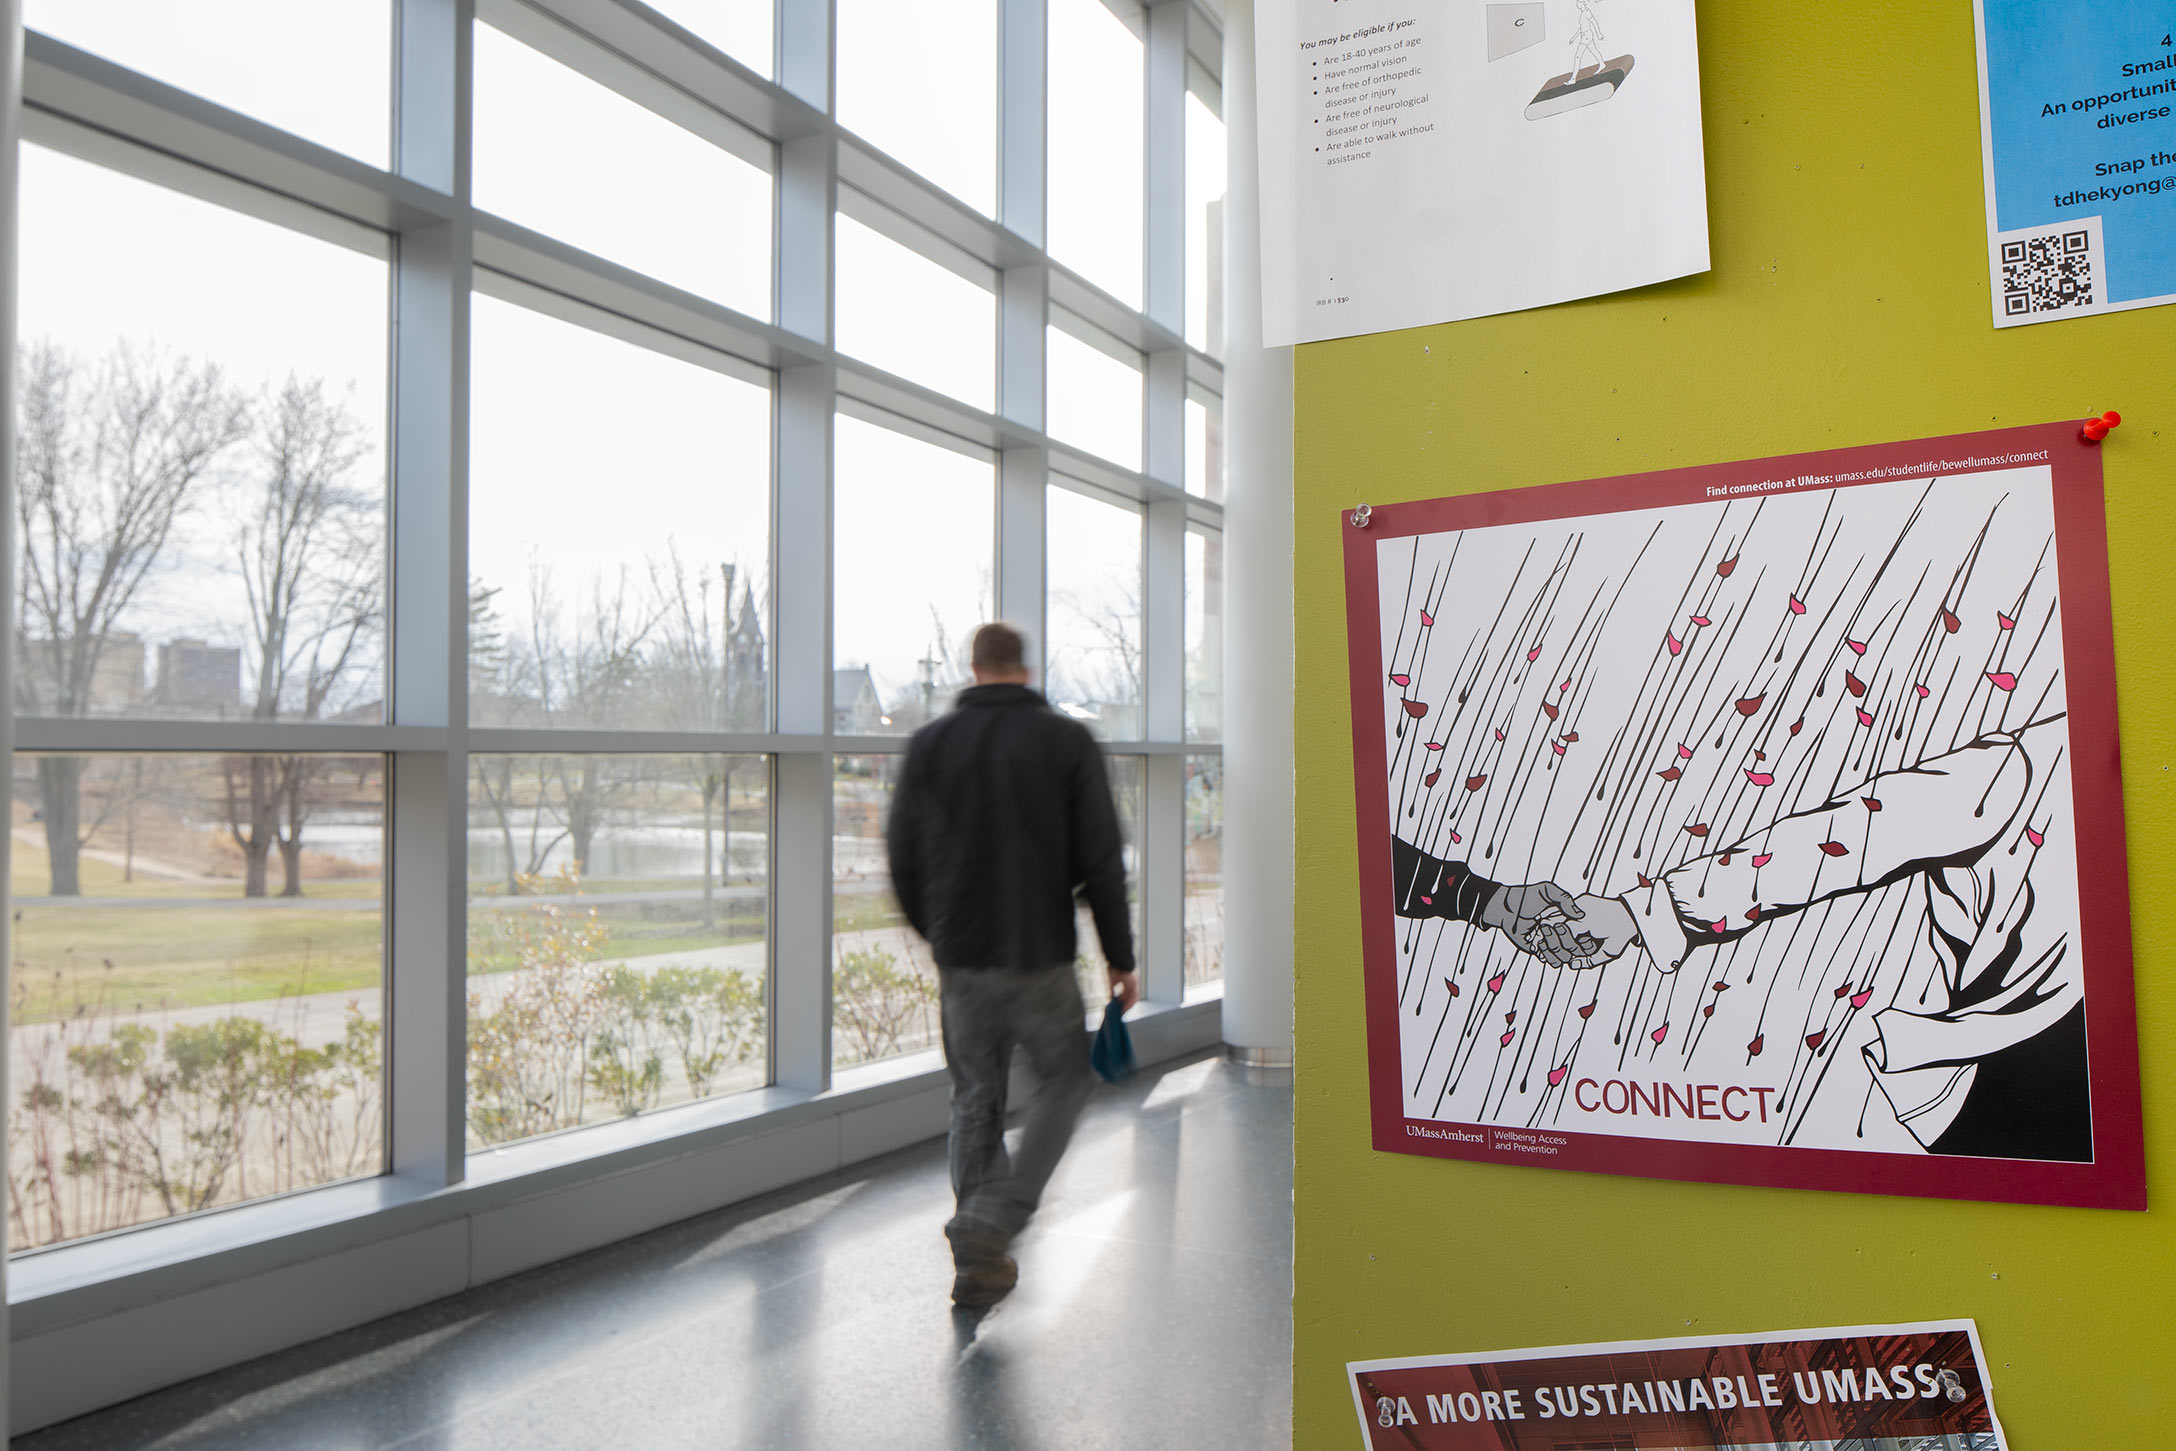 A poster reading Connect is shown on a wall in the Integrative Learning Center. Campus is seen through a nearby wall of windows. One blurred person walks away from the camera.